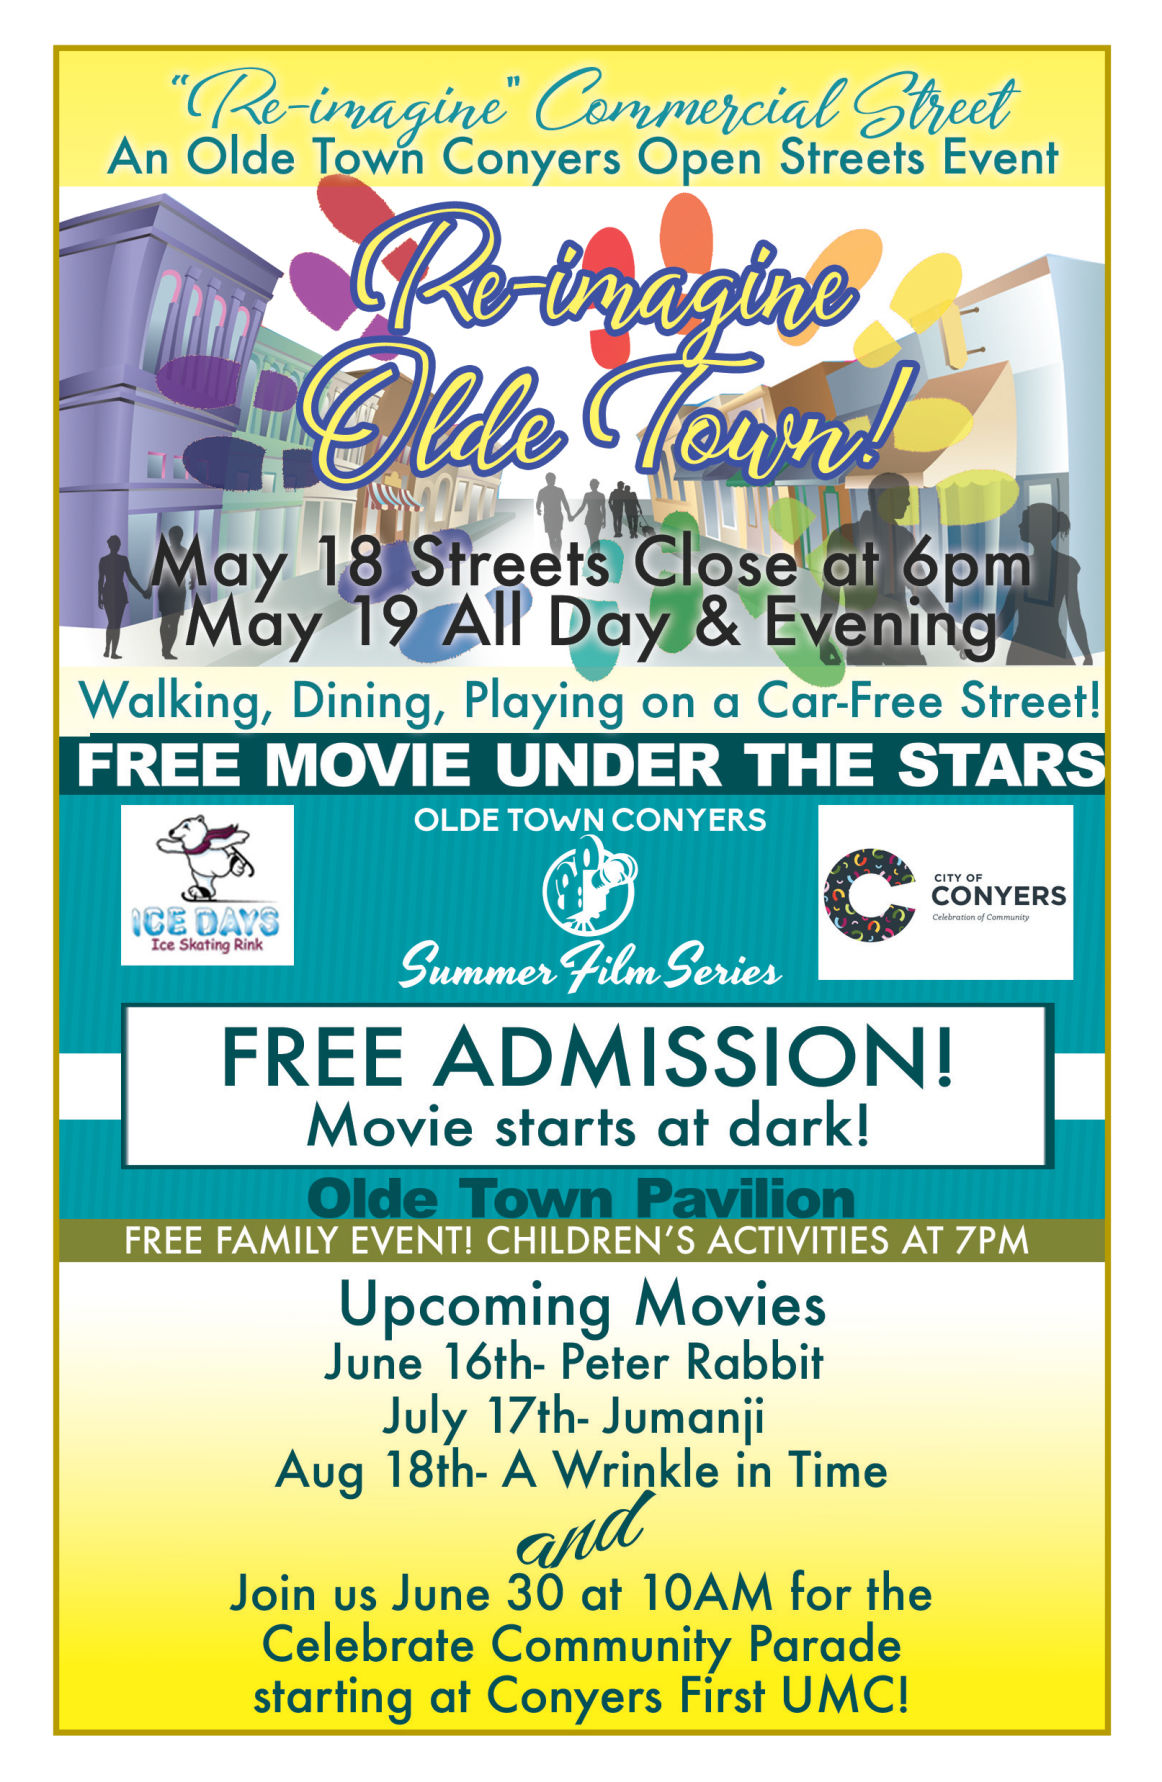 Conyers hosting first Re imagine event May 18 19